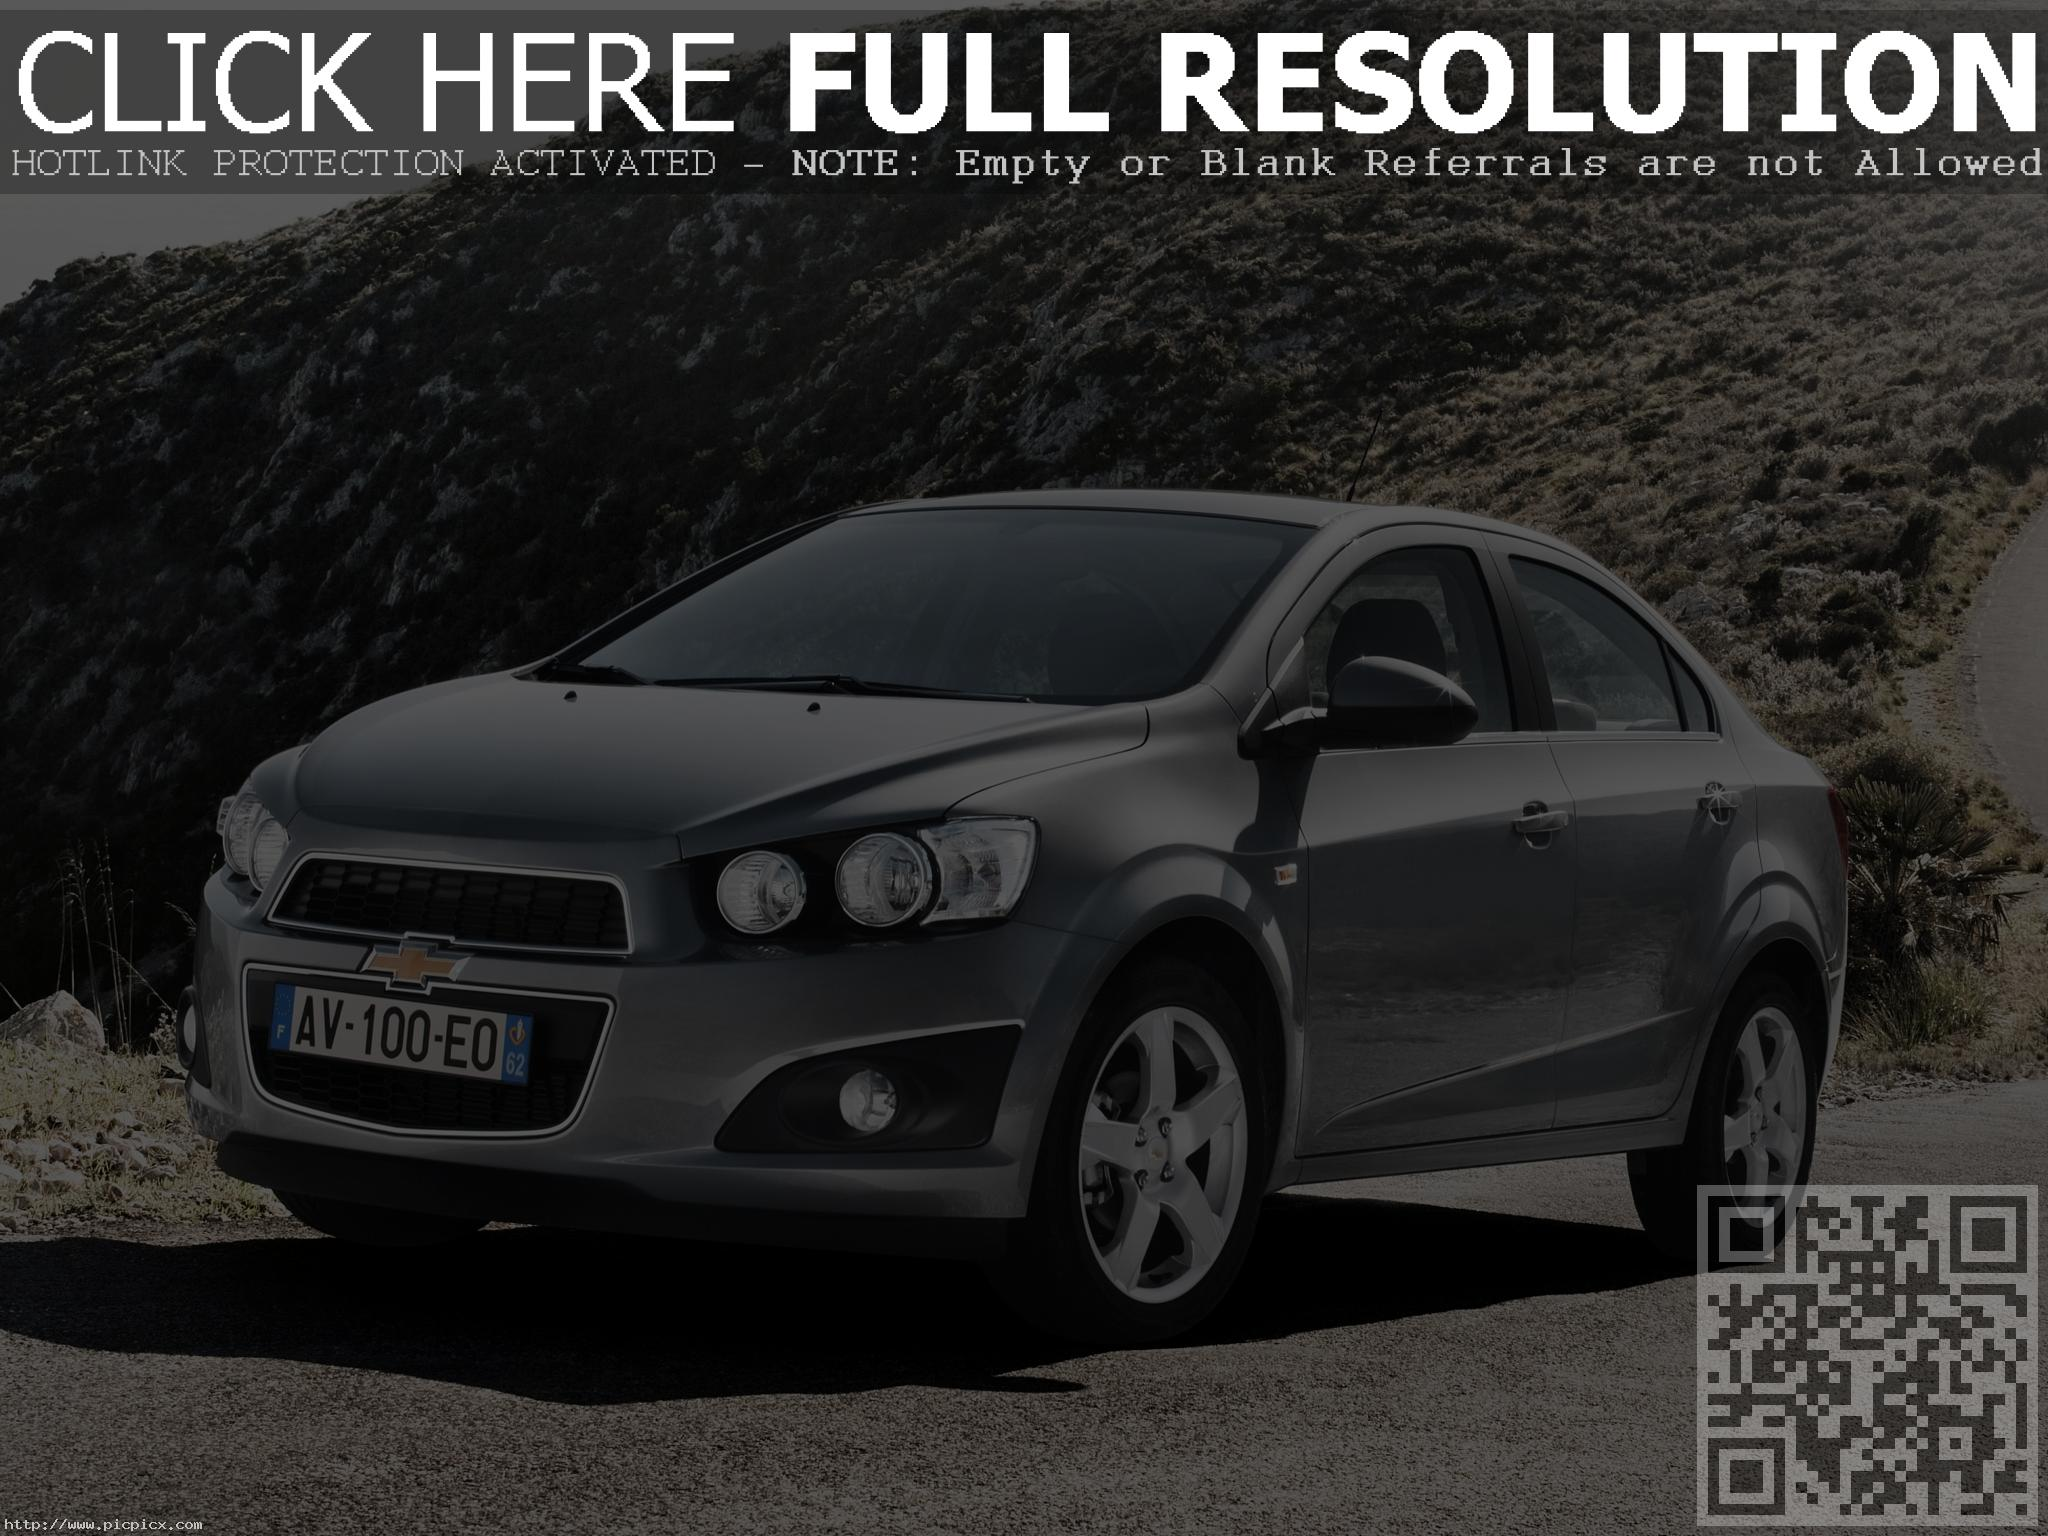 Pictures of chevrolet aveo sedan 2014 #2